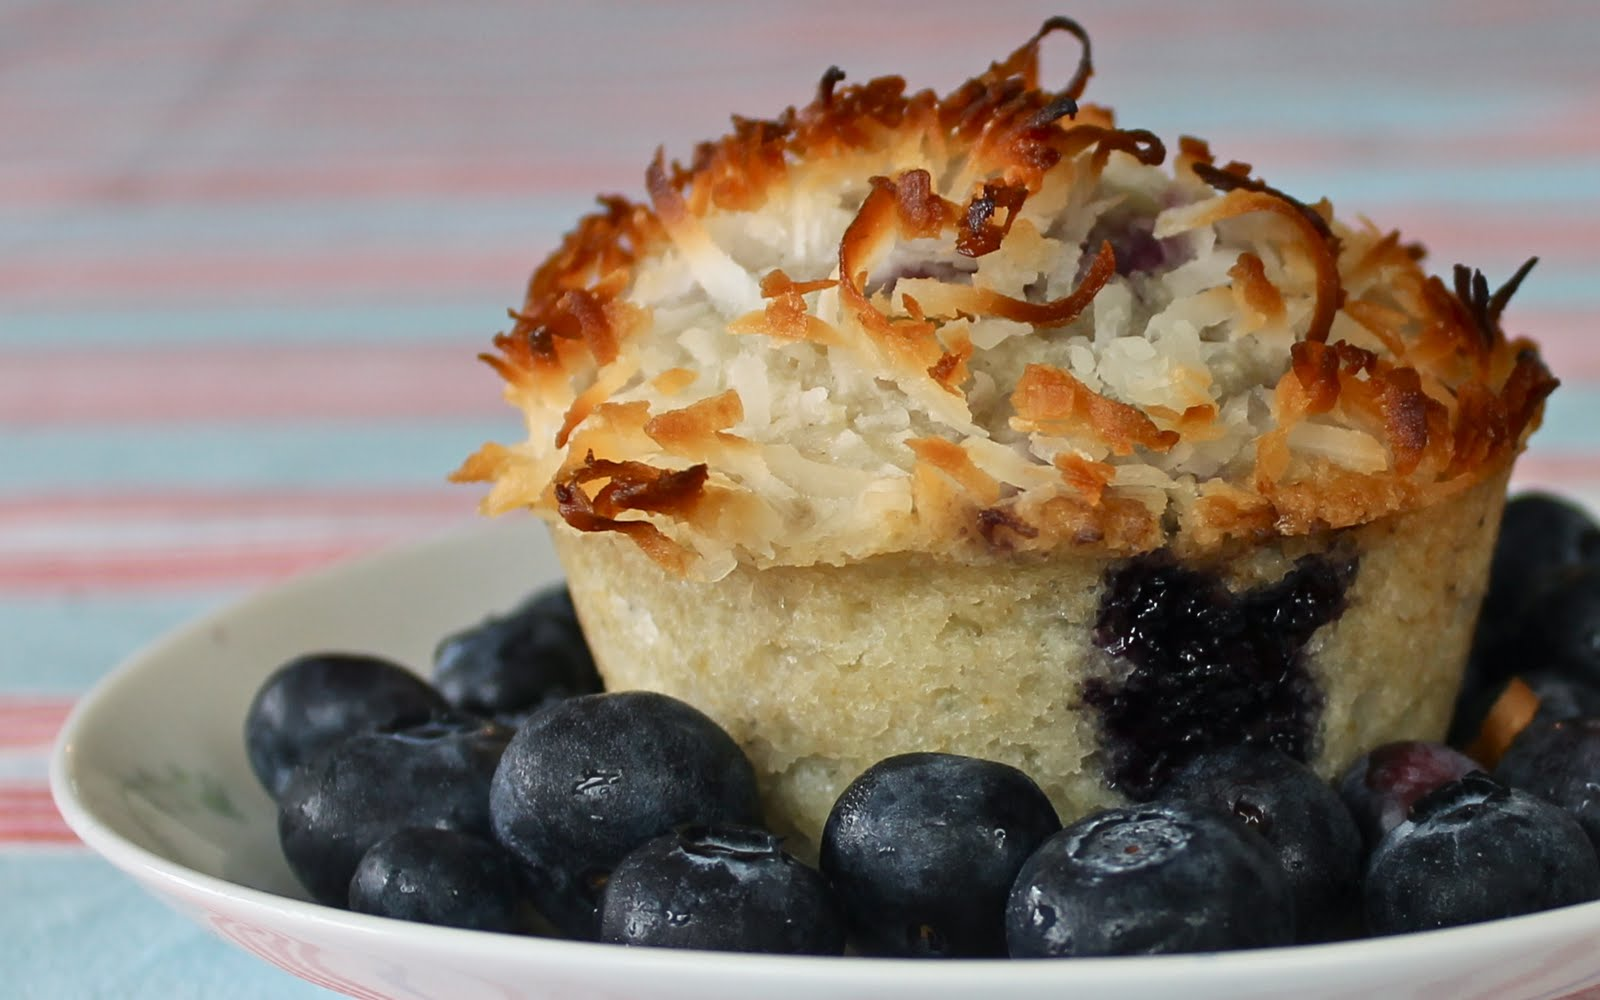 Yammie's Noshery: Coconut Topped Blueberry Muffins